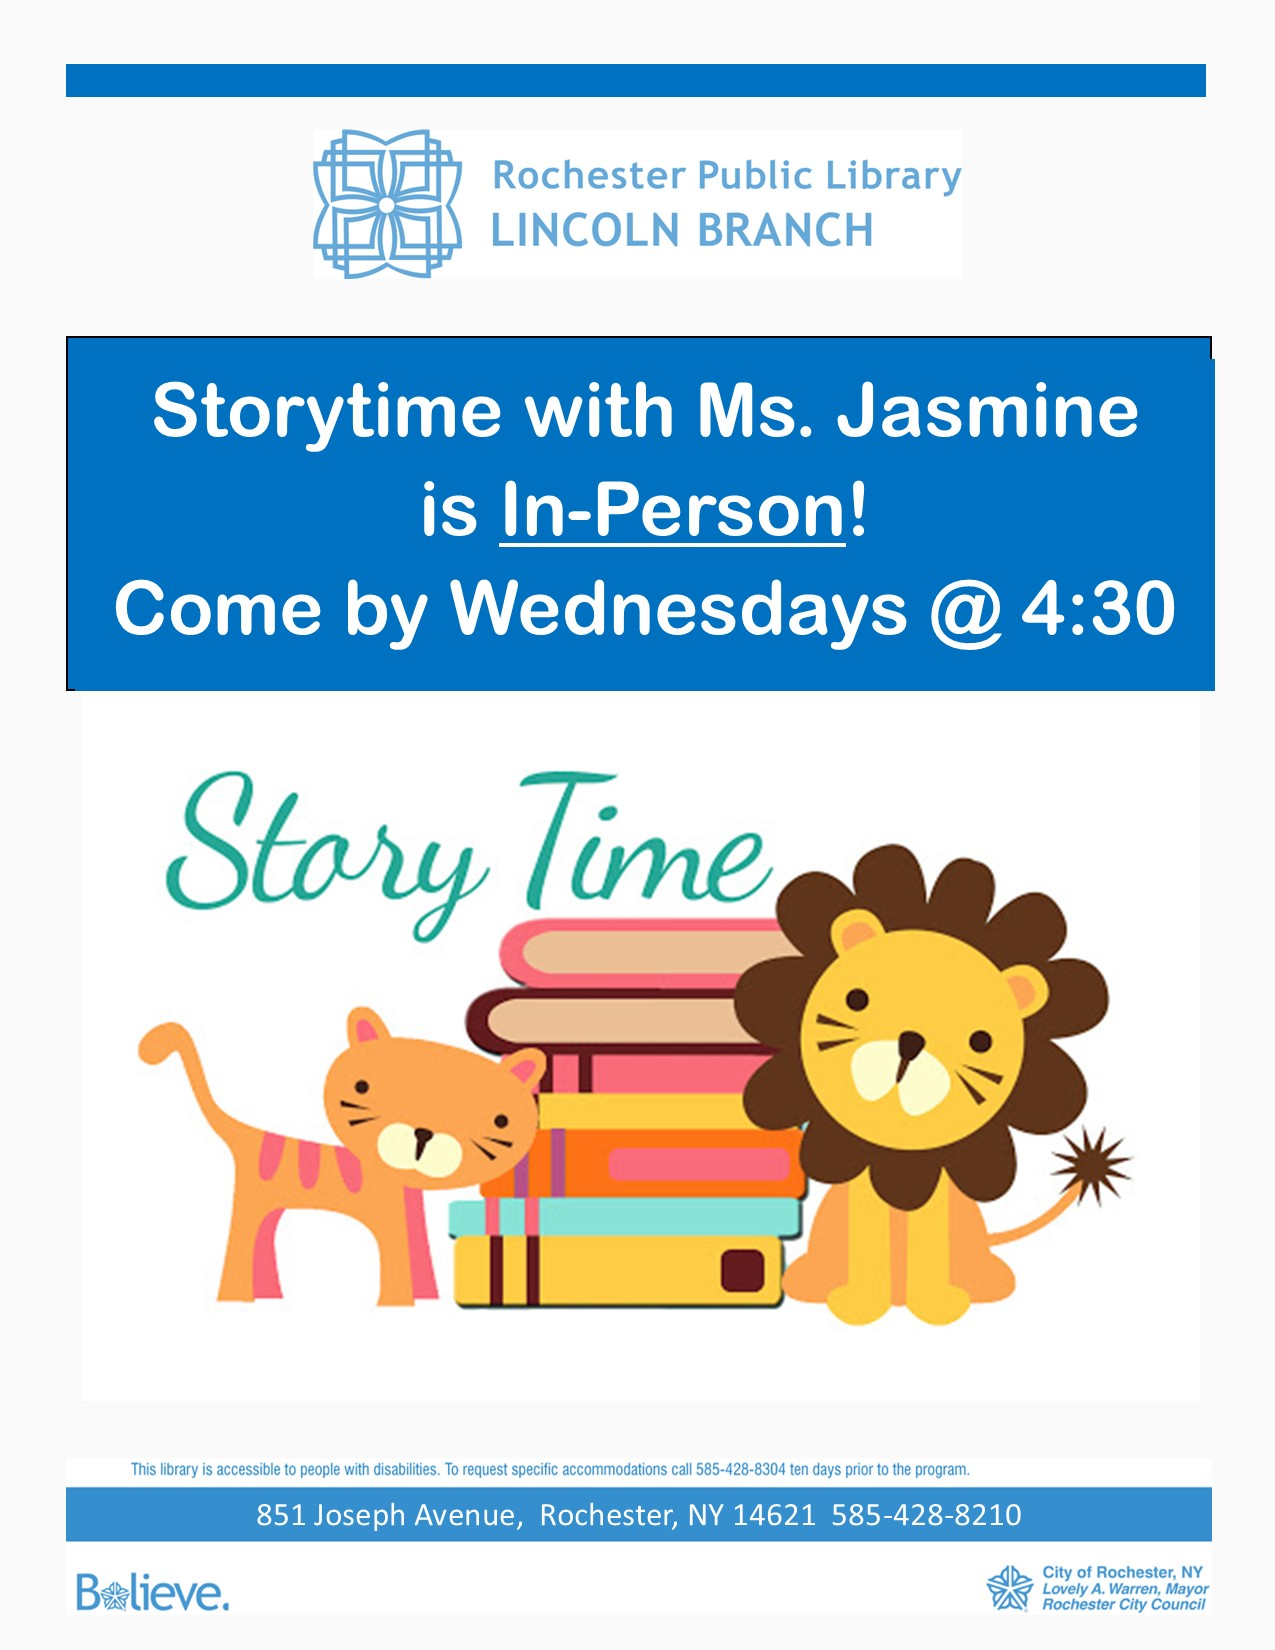 Storytime at the Lincoln Library